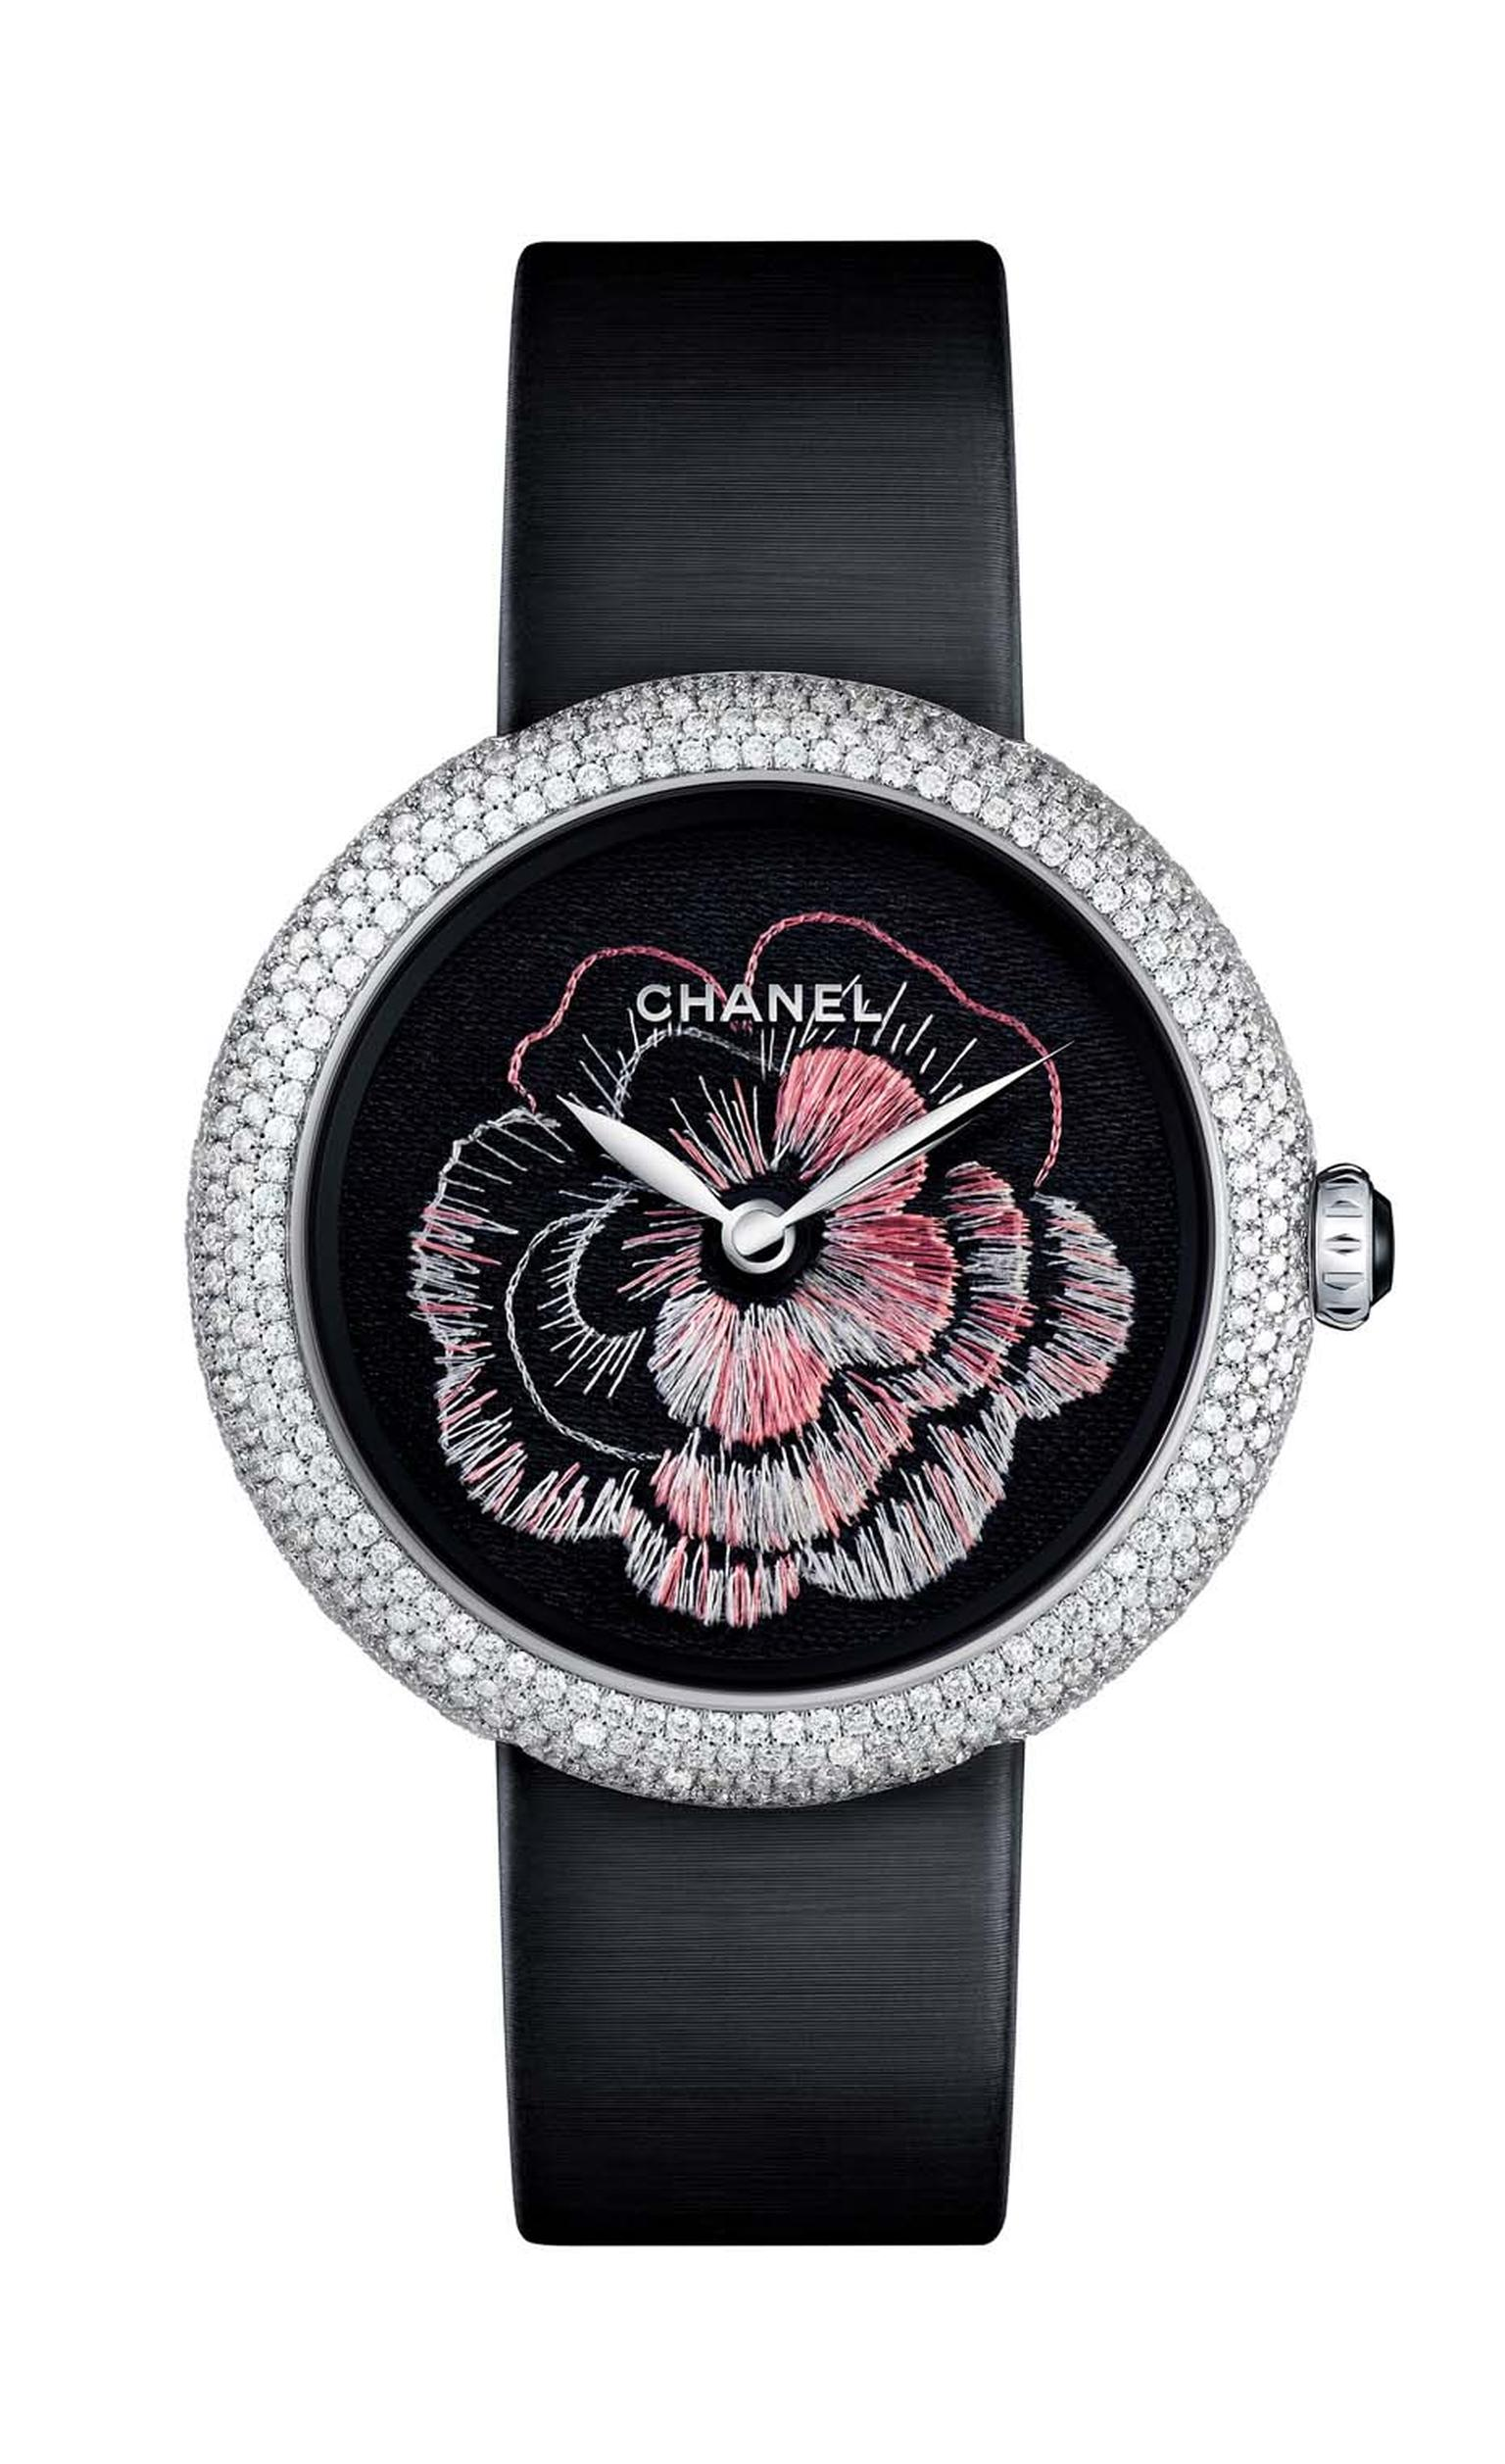 Chanel Mademoiselle Privé Camélia Brodé watch with a hand-embroidered dial.